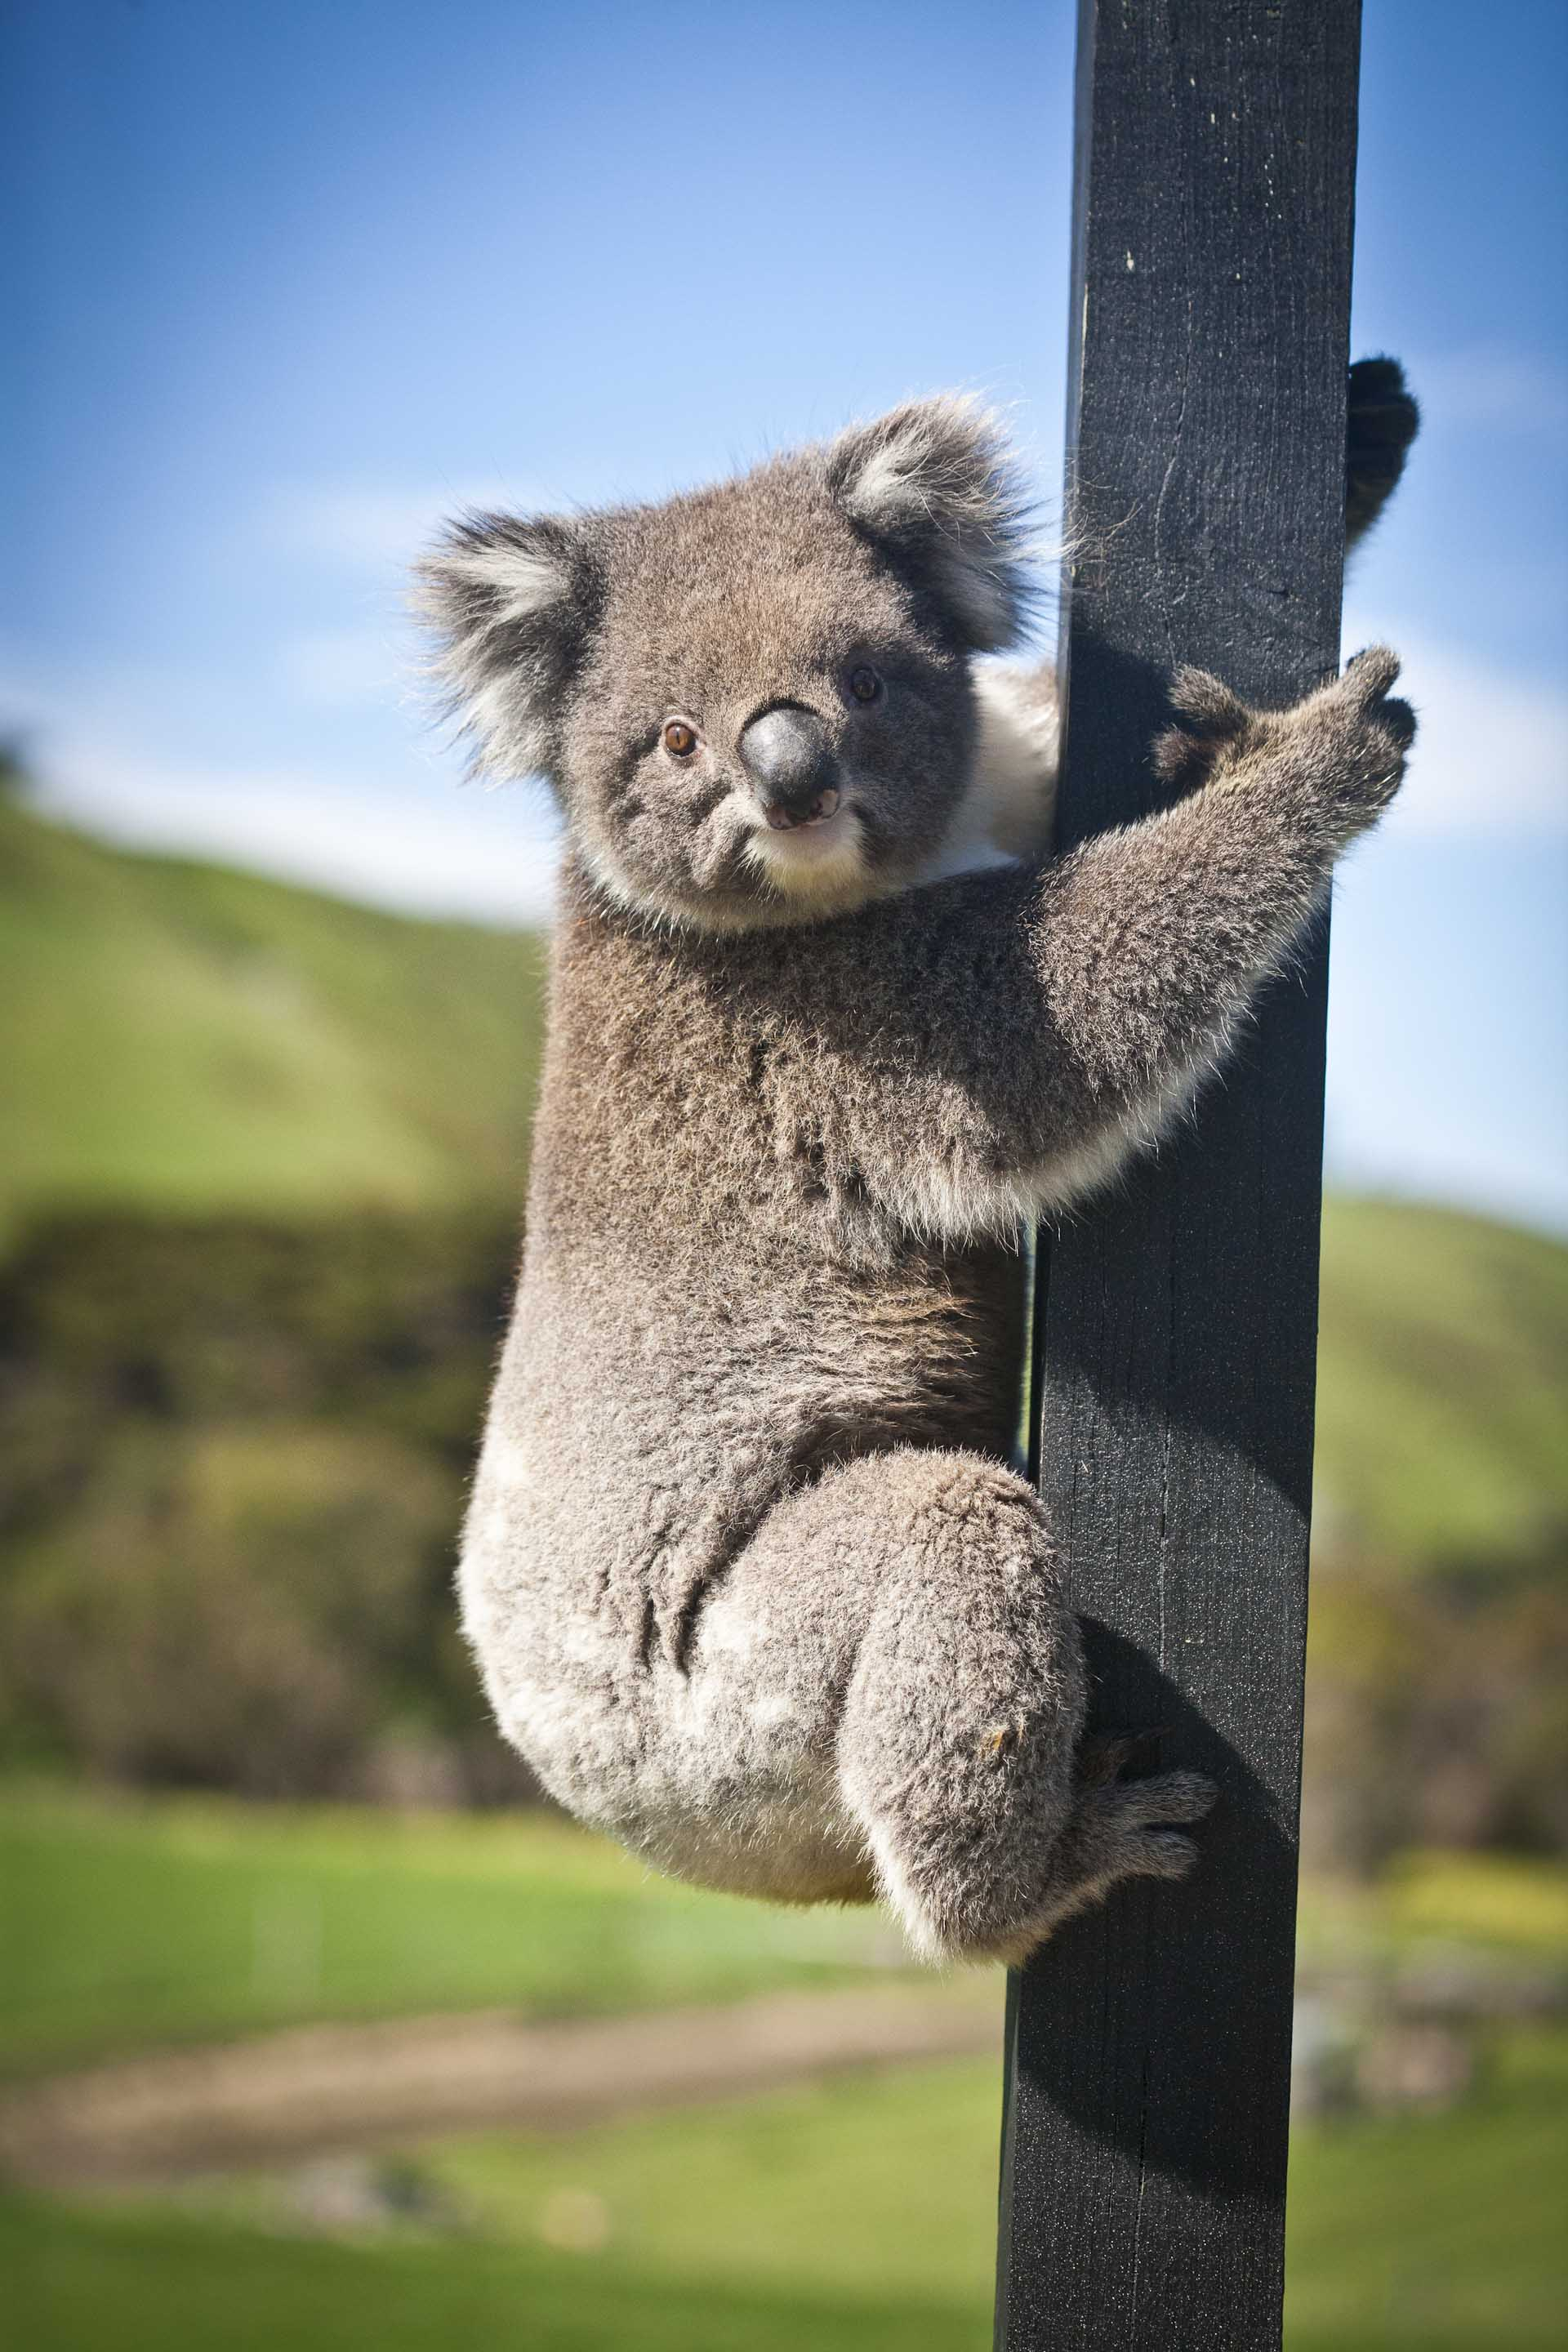 Koala Bear at Chi Medicinal Farm Pose 6